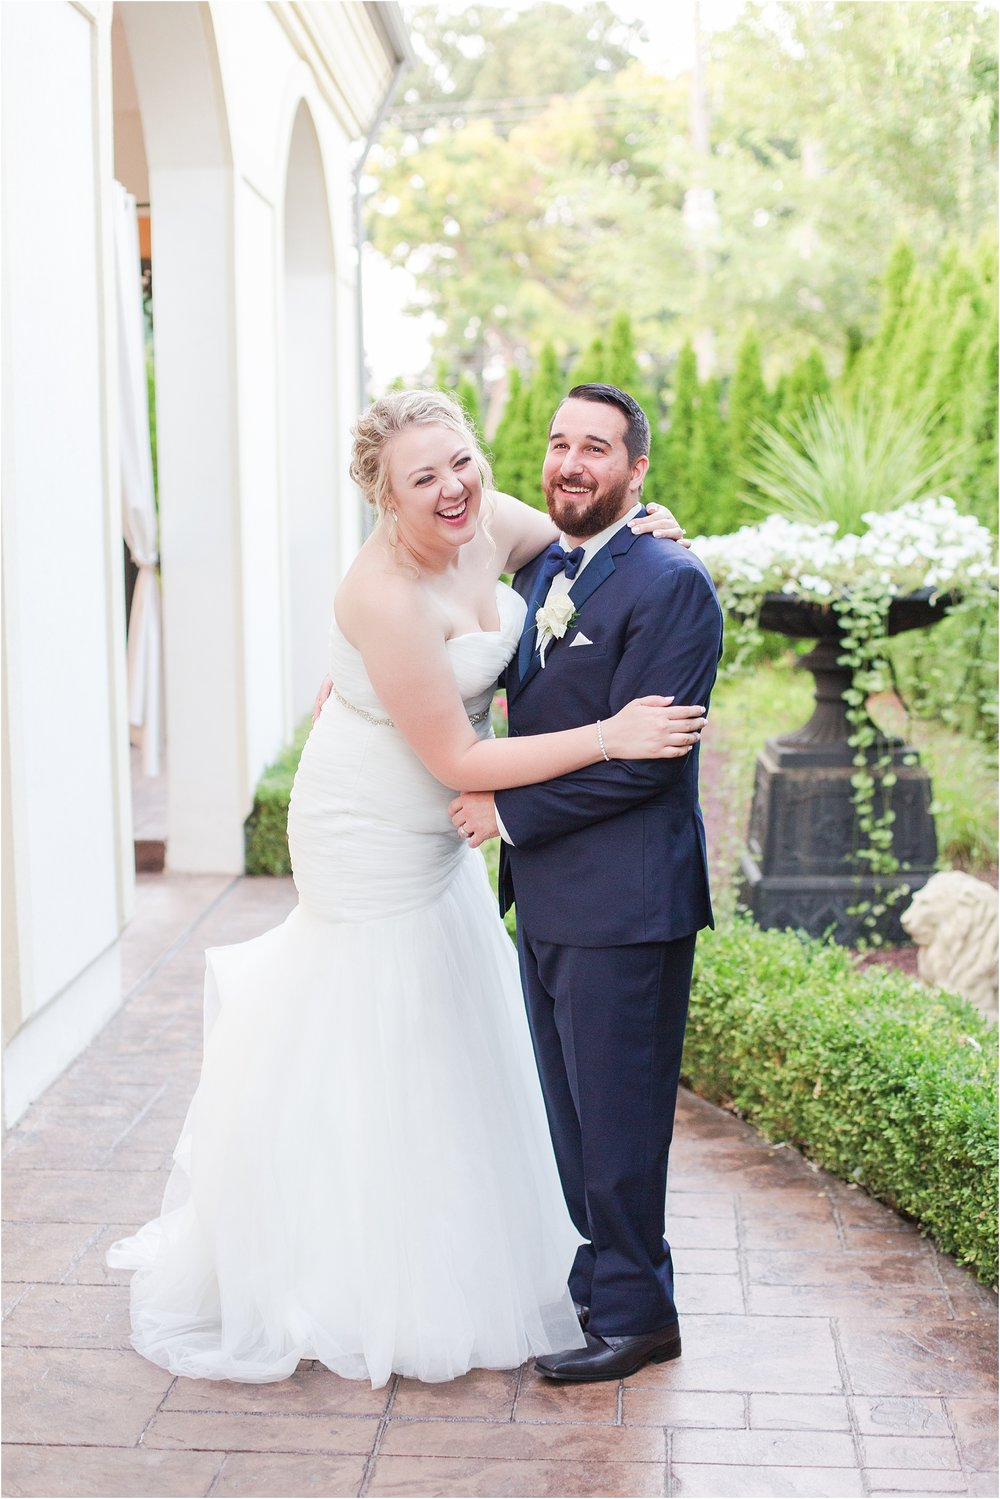 joyful-and-candid-navy-blush-wedding-photos-at-crystal-gardens-in-howell-mi-by-courtney-carolyn-photography_0099.jpg